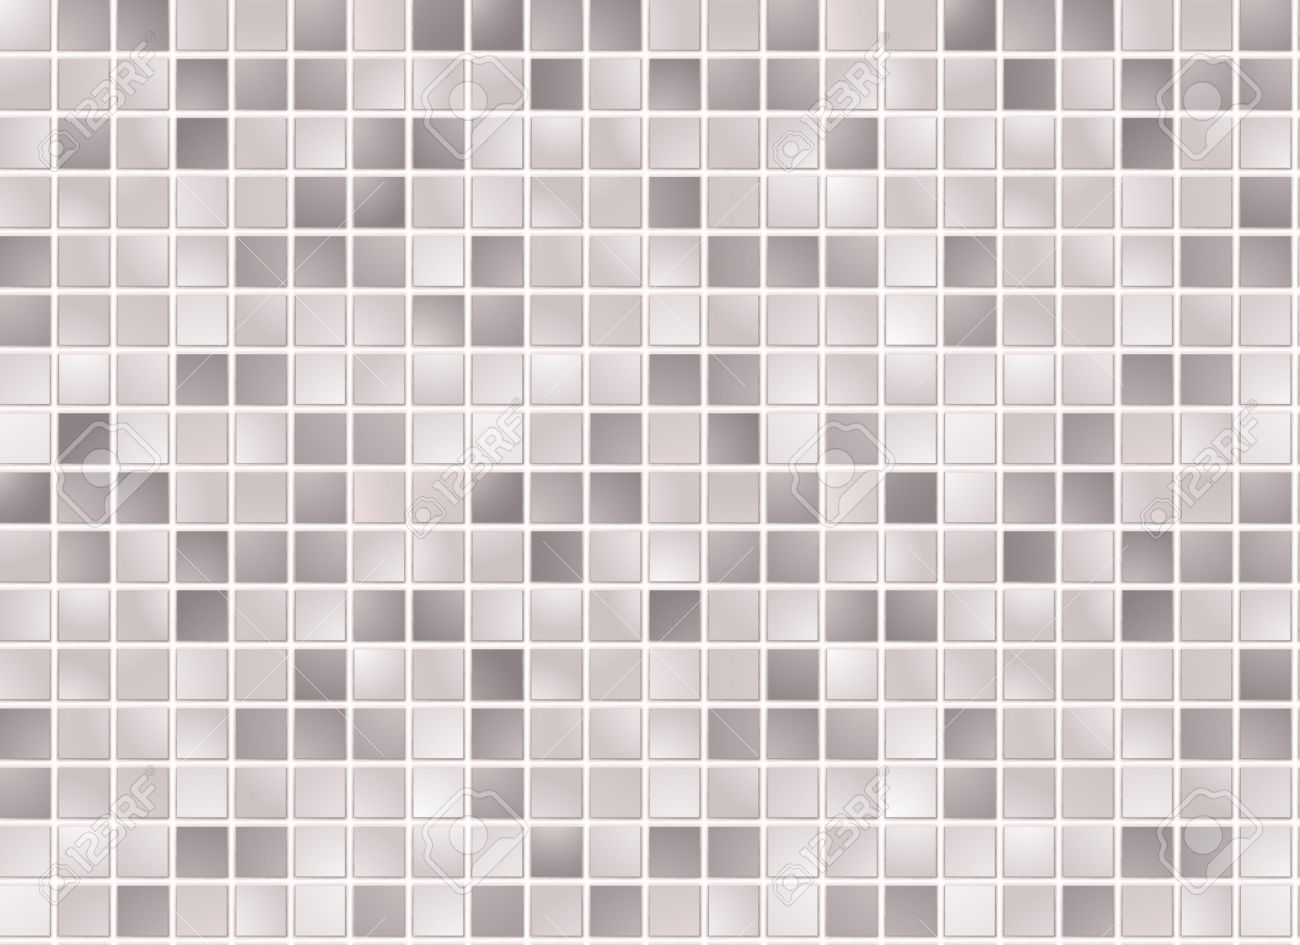 Kitchen Tile Pattern Best Seamless Grey Square Tiles Pattern Royalty Free Cliparts Vectors Inspiration